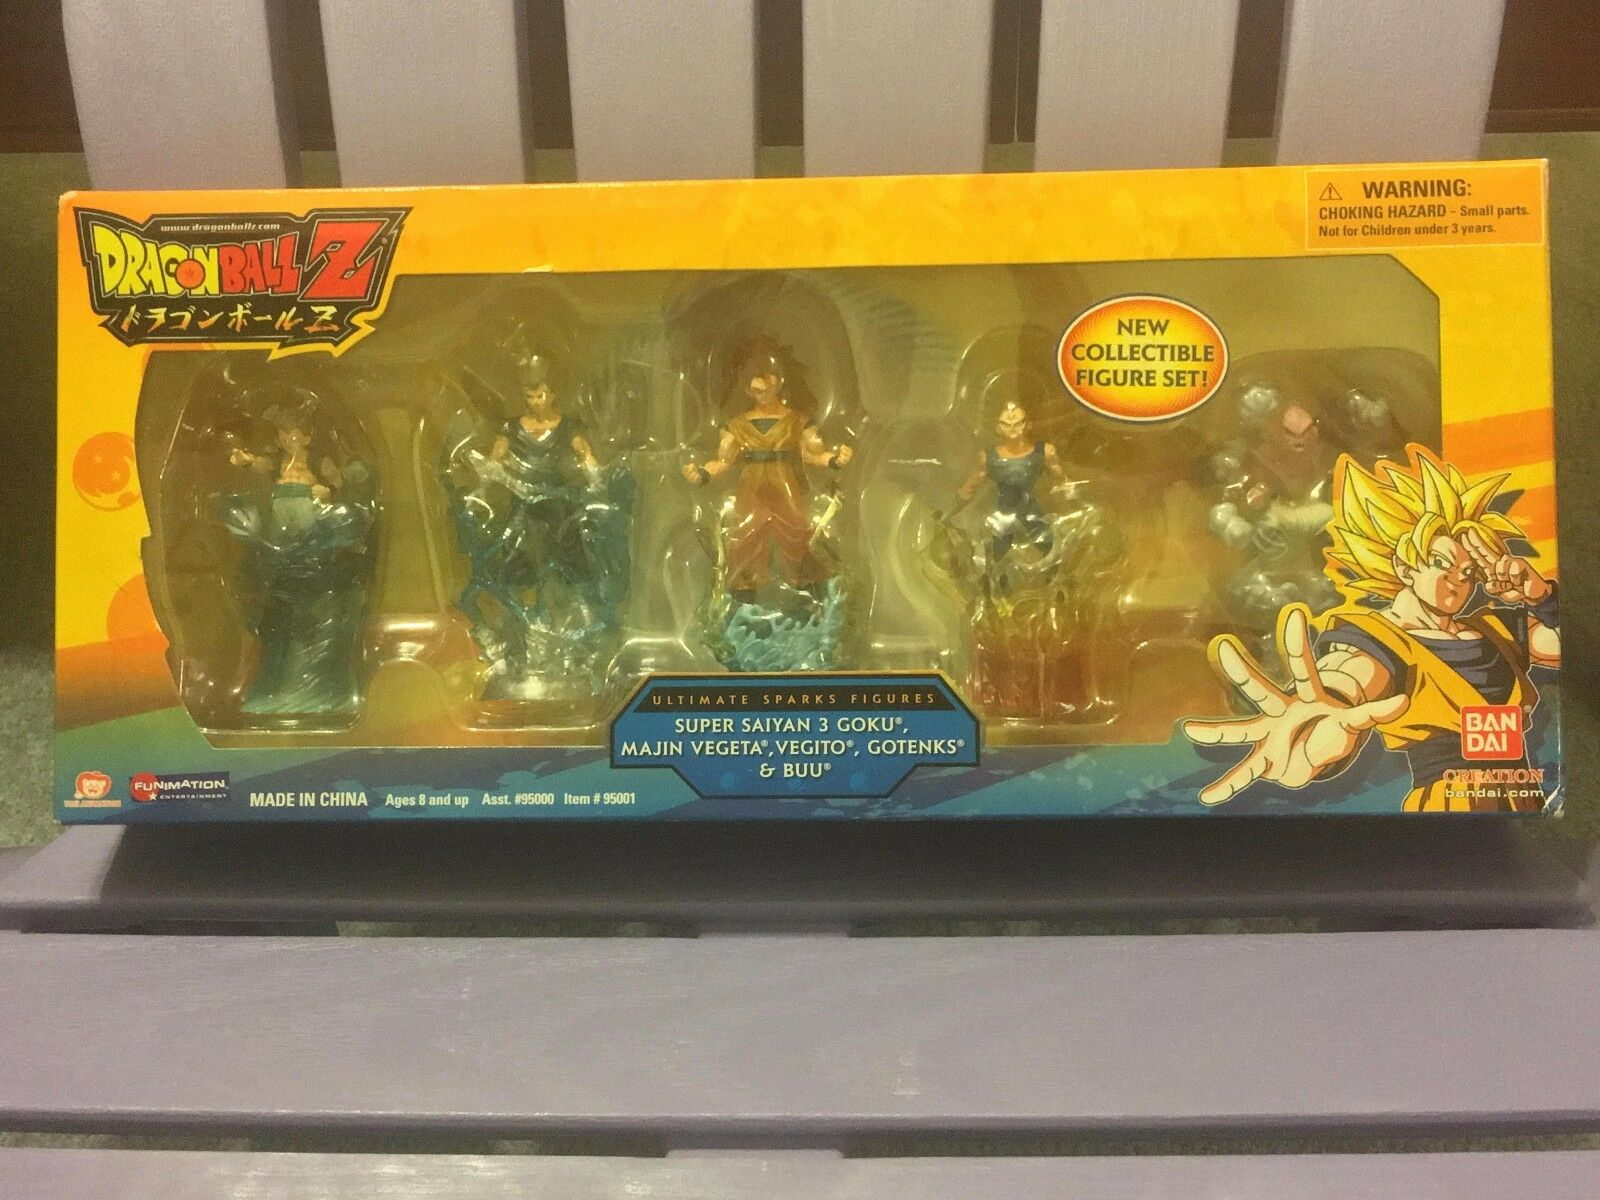 Dragon Ball Z Ultimate Sparks Figures 5 Set